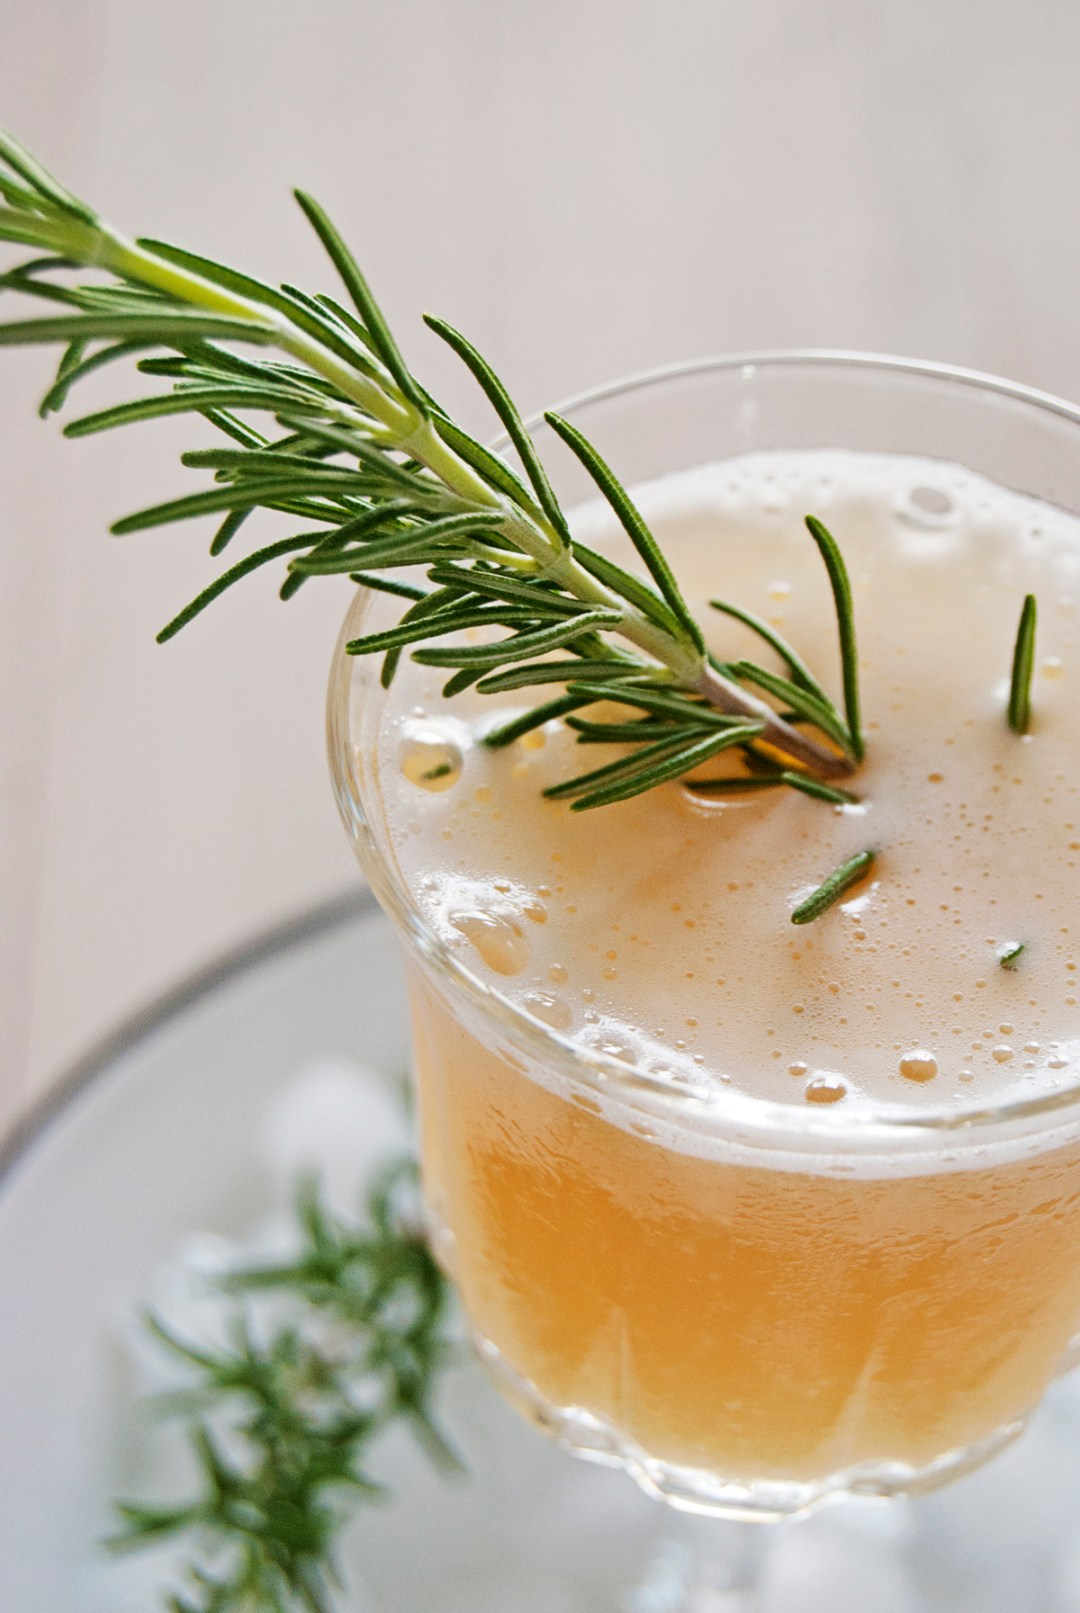 This tasty bourbon cocktail features St. Germain, fresh lemon juice, simple syrup, and rosemary, and is inspired by a Louisville restaurant cocktail!